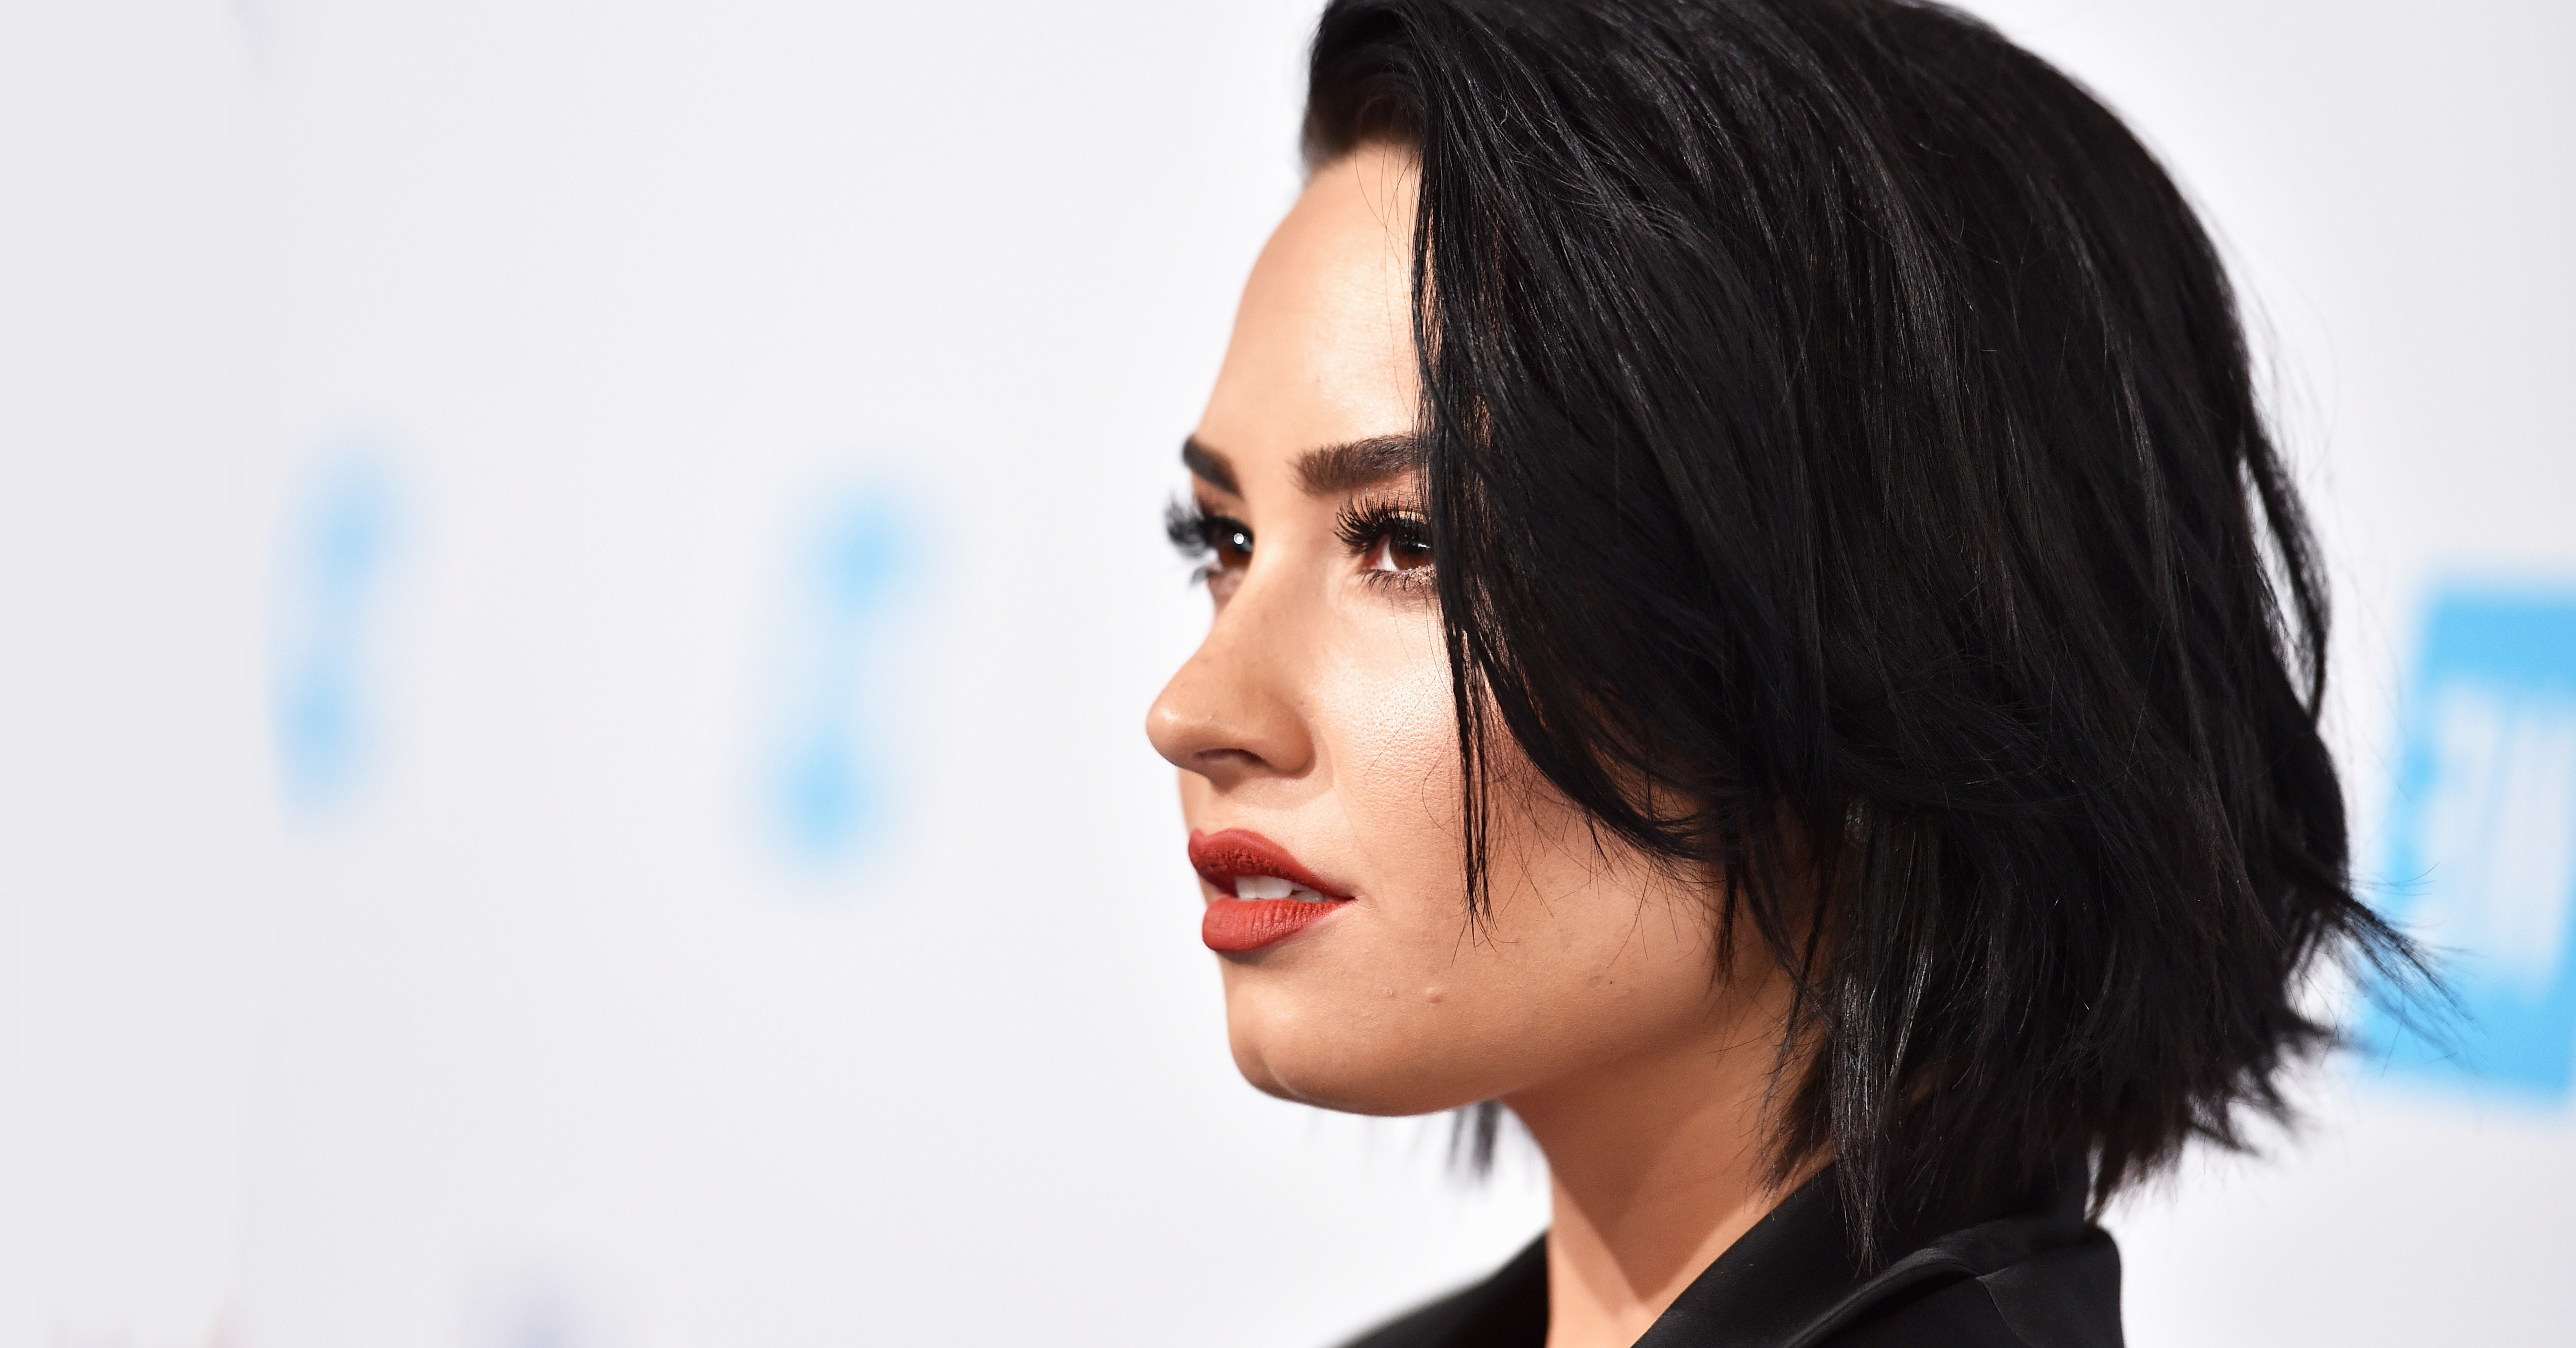 Demi Lovato Looks Incredible With Her New Ombré Hair | Glamour Throughout Demi Lovato Short Haircuts (Gallery 22 of 25)